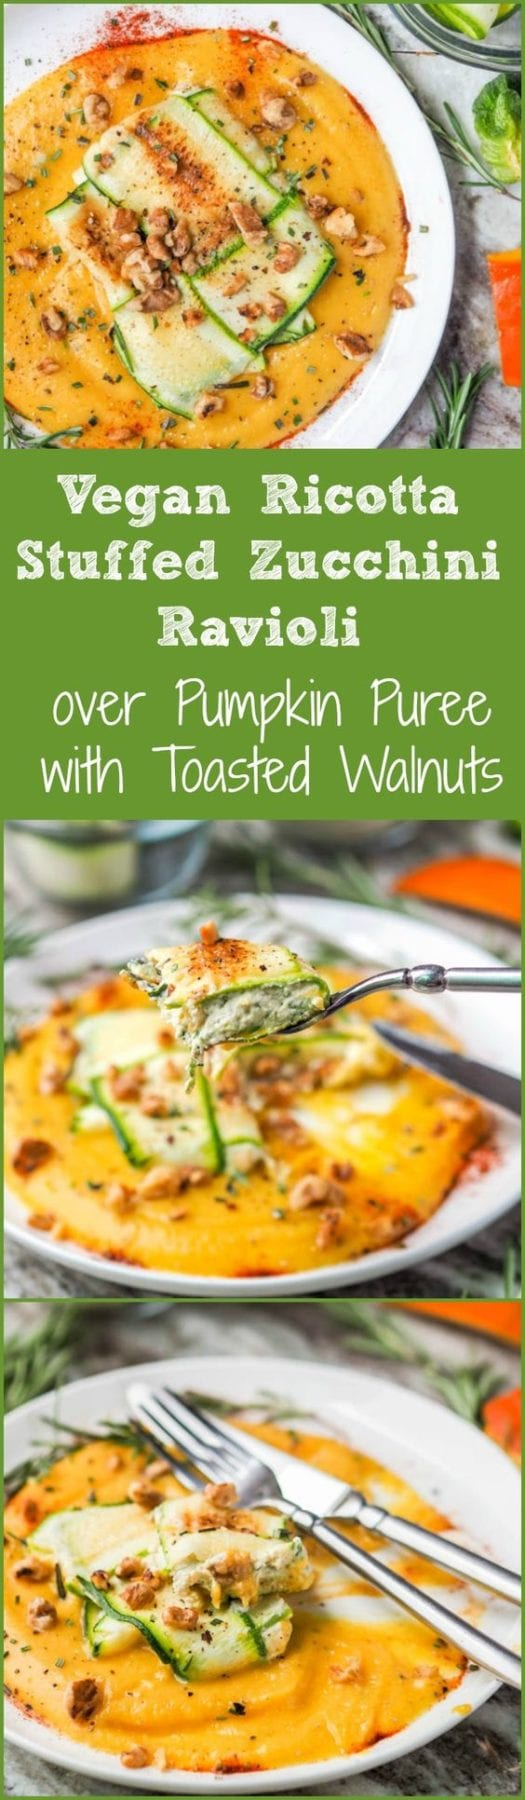 Your favorite fall pumpkin rosemary flavors topped with a vegan ricotta stuffed zucchini ravioli and sprinkled with toasted walnuts. Dinner doesn't get better than this. Who knew it'd be so easy to make zucchini ravioli paleo, low carb and gluten free? #vegan #paleo #zucchini #ravioli #dinner #healthy